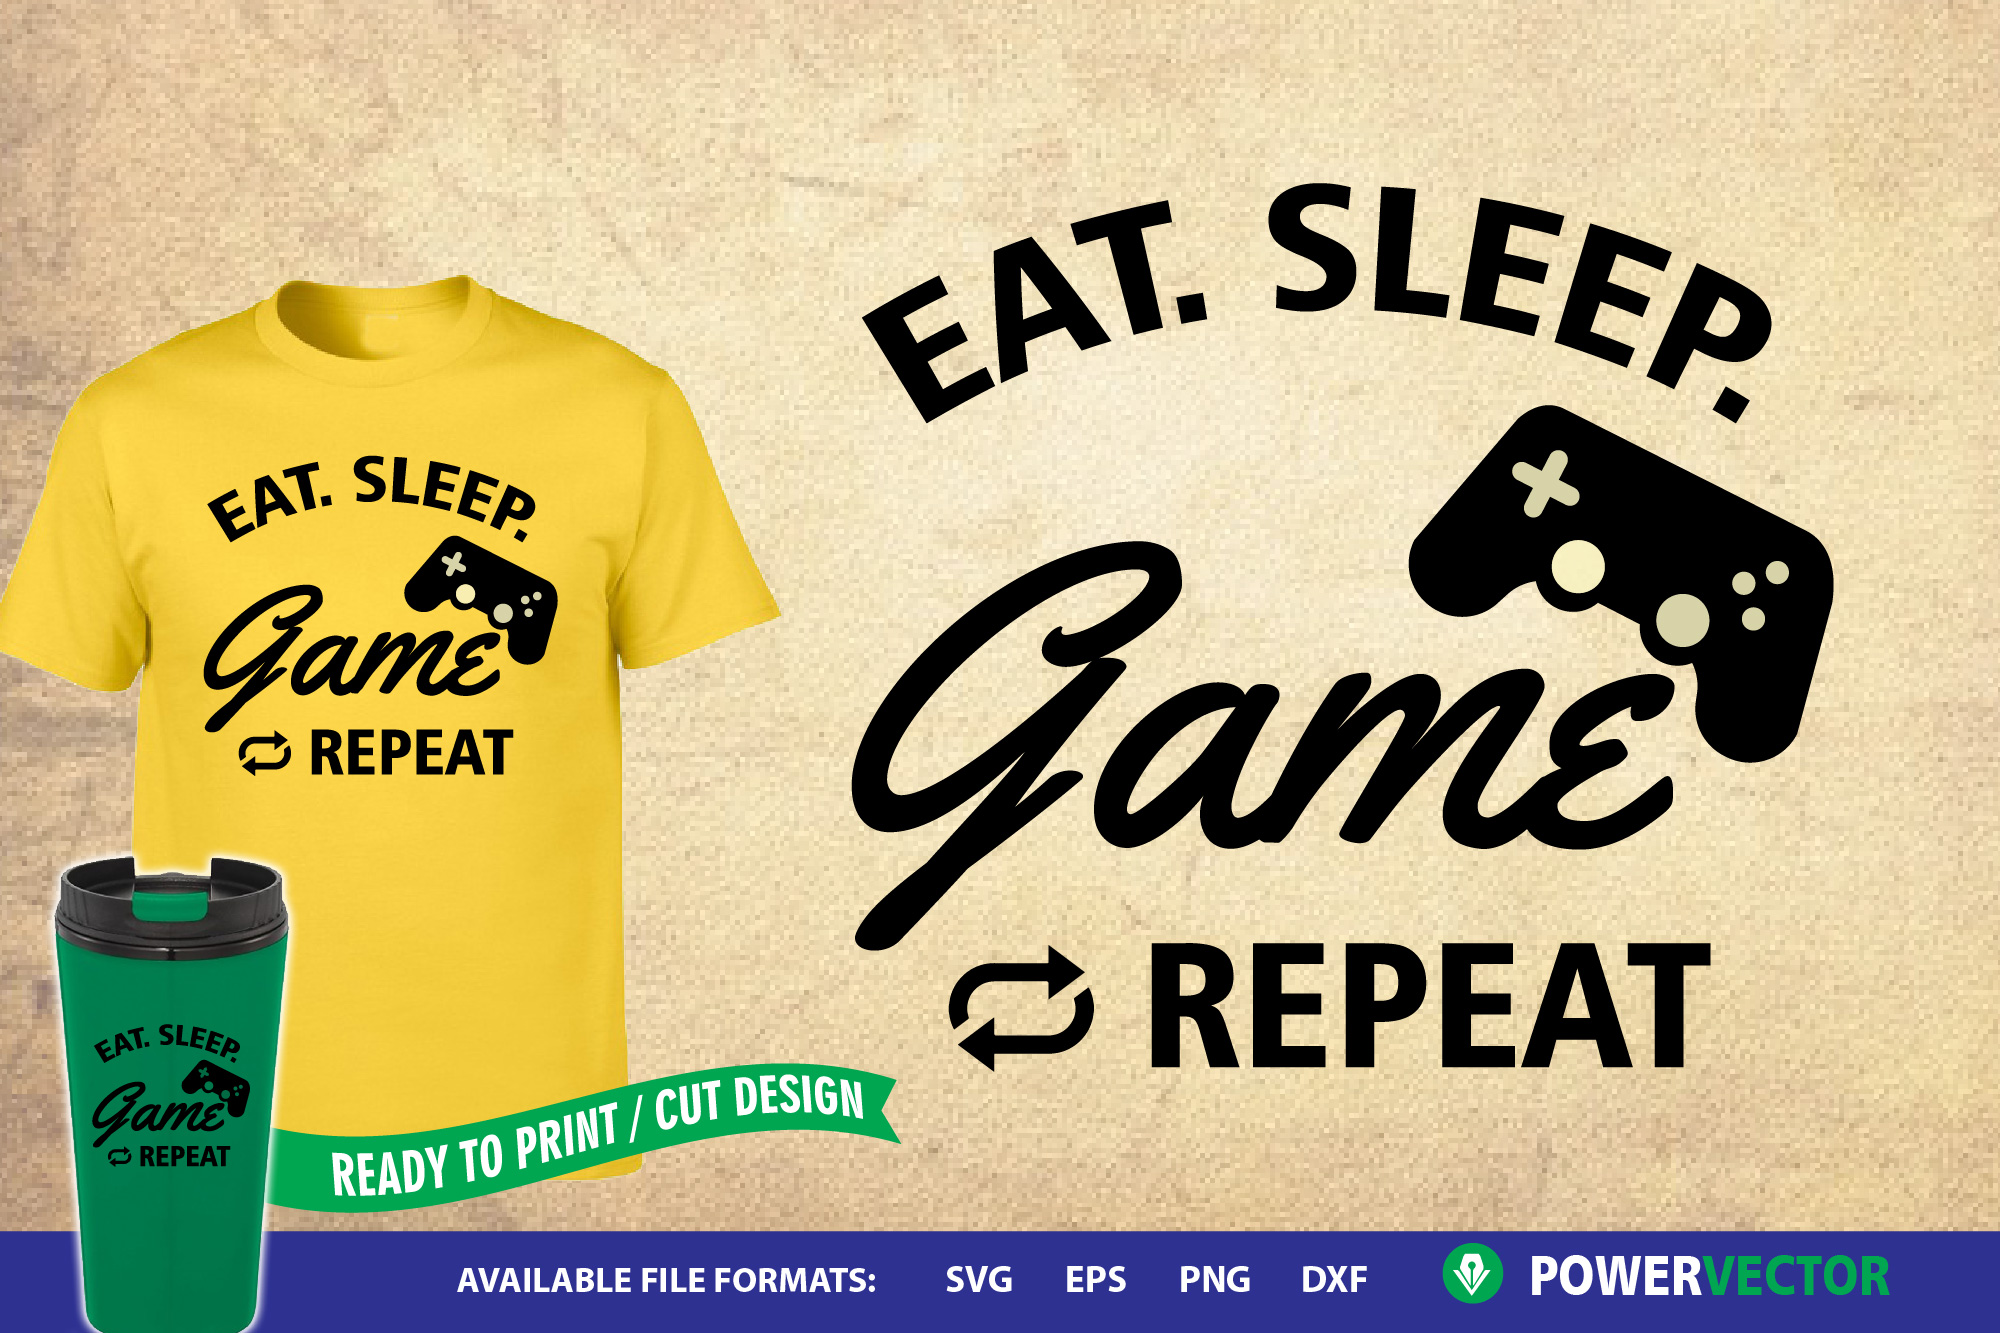 Download Free Sayings Eat Sleep Game Repeat Graphic By Powervector Creative for Cricut Explore, Silhouette and other cutting machines.